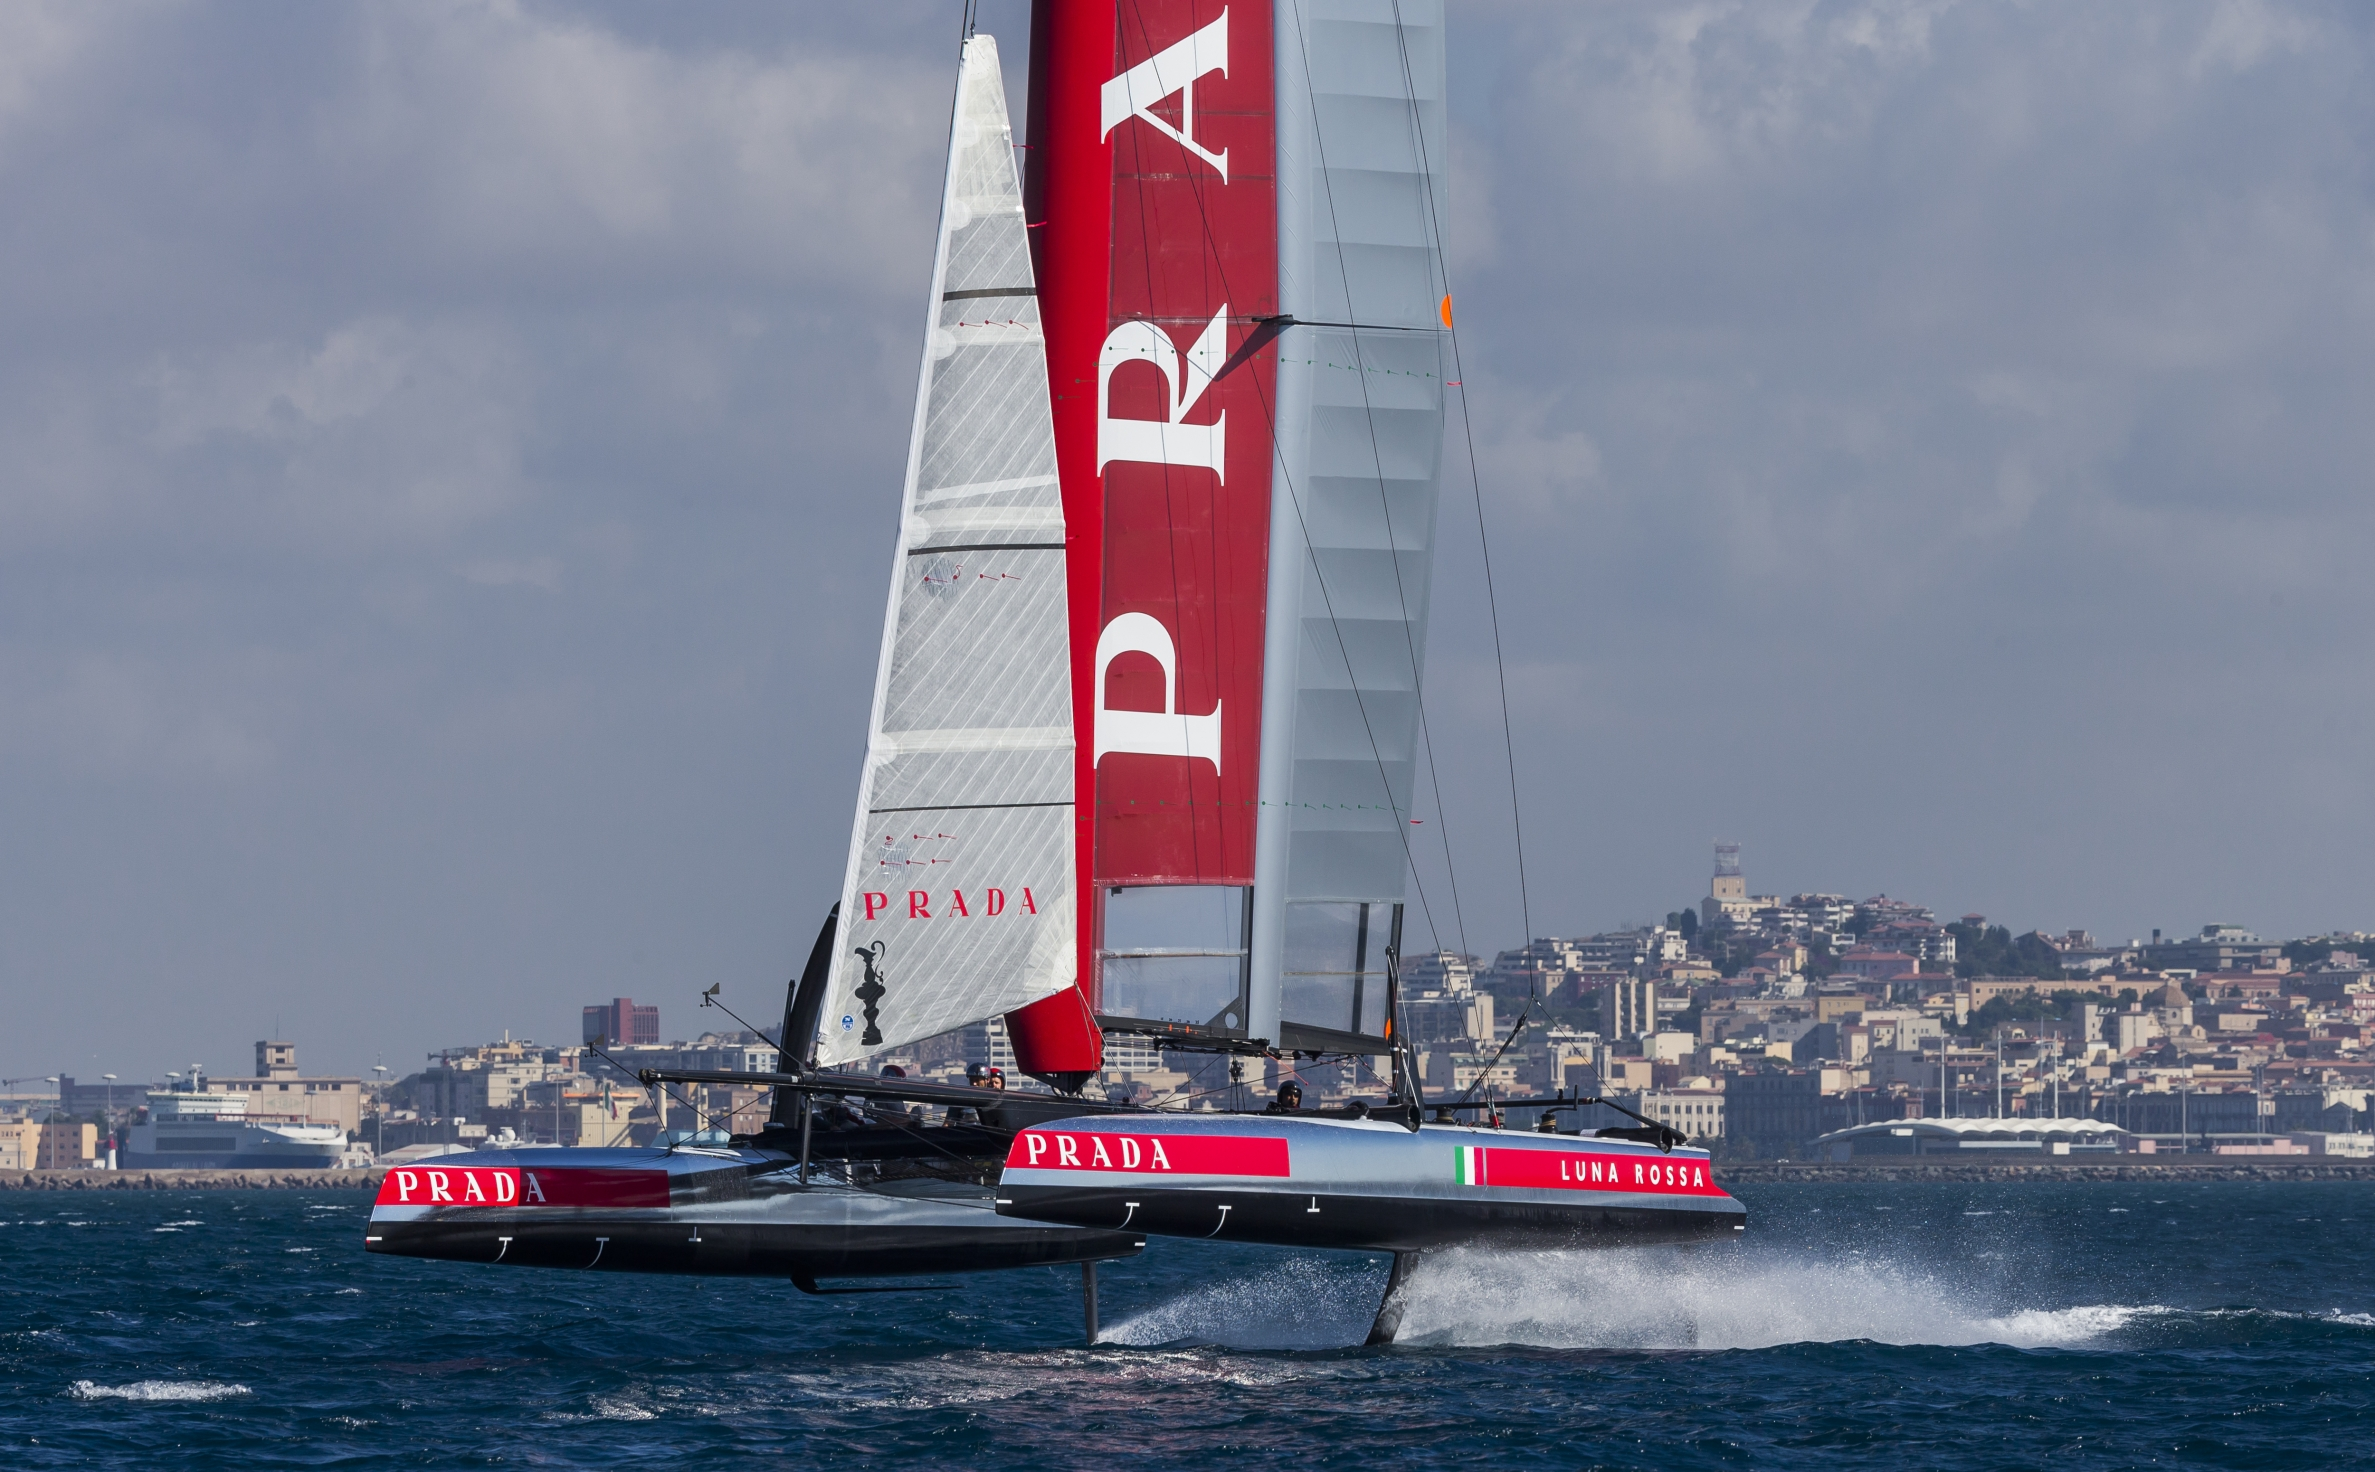 Luna Rossa Open Day